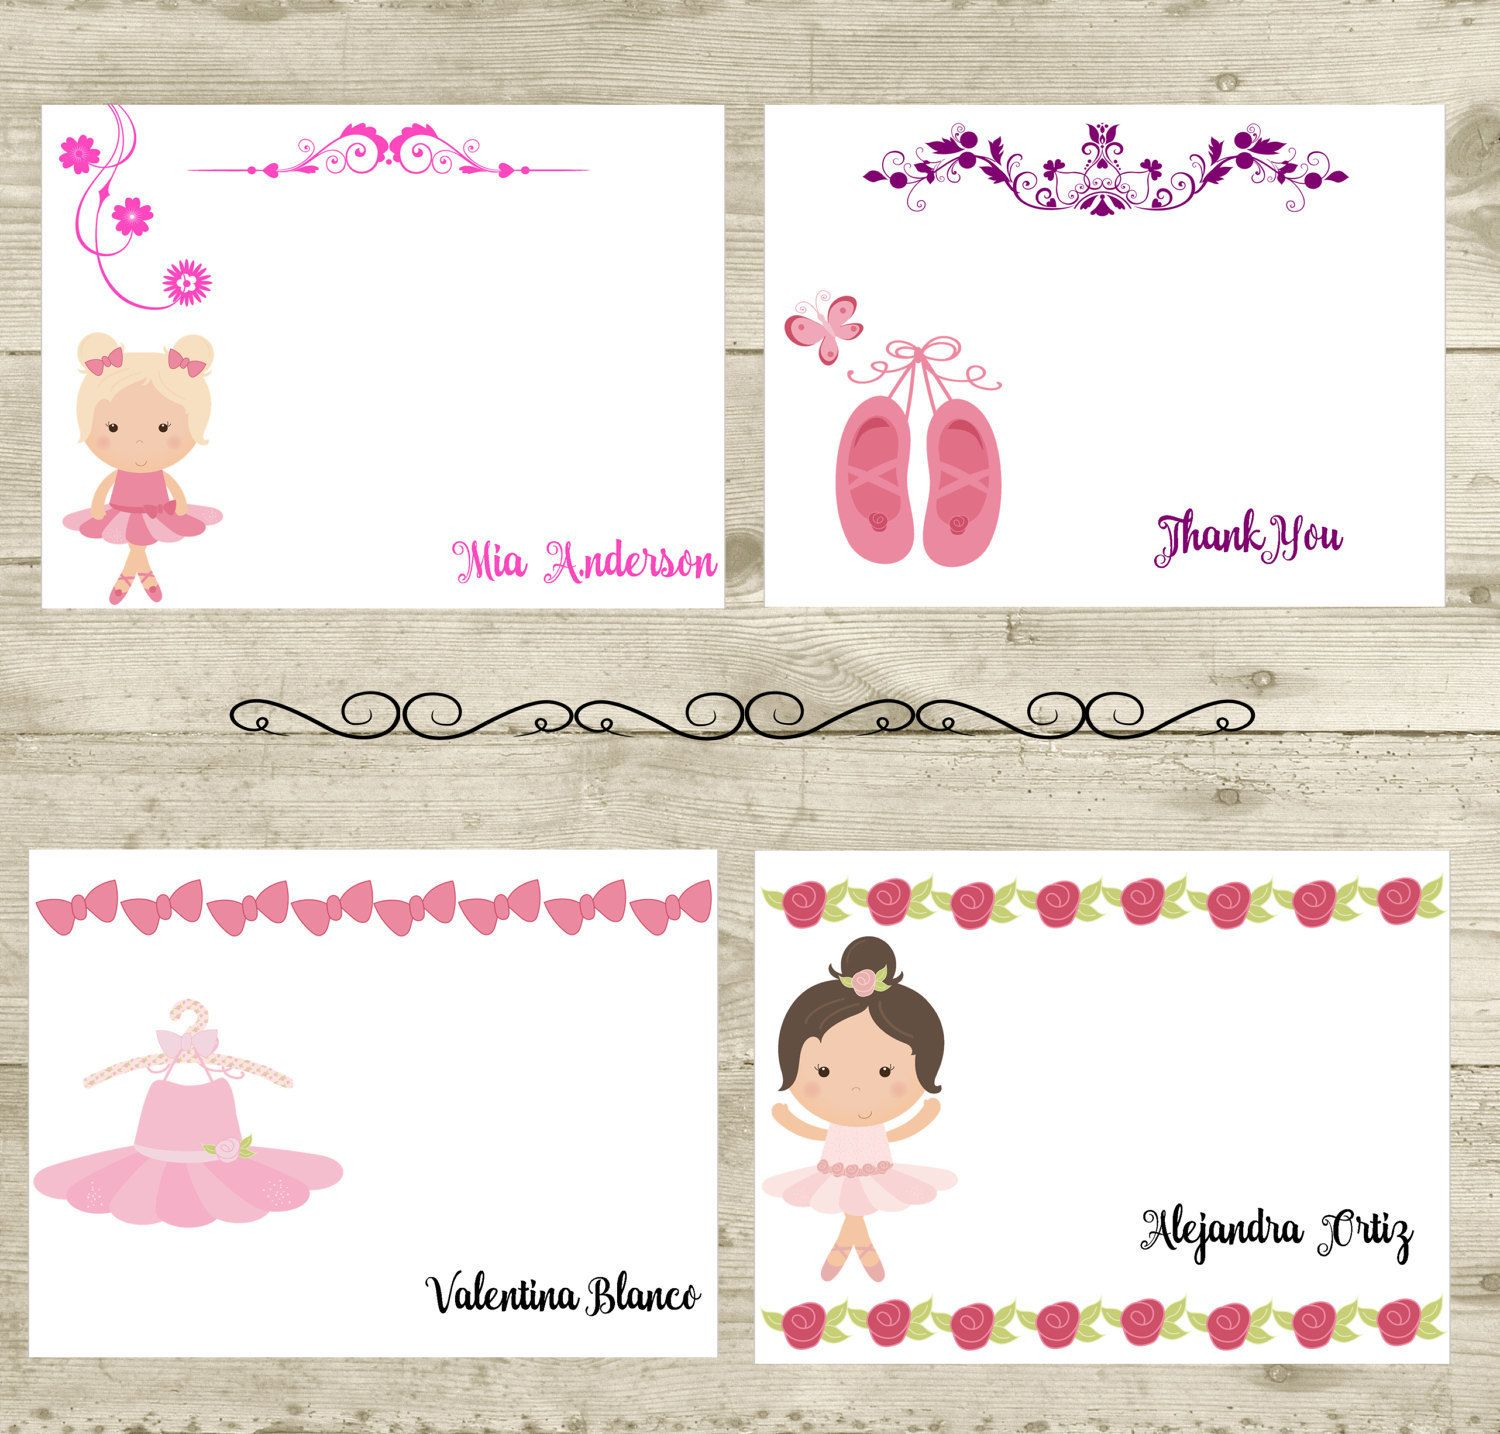 Printable Note Cards Ballerina Note Cards Ballerina Cards Dance Note Cards Dance